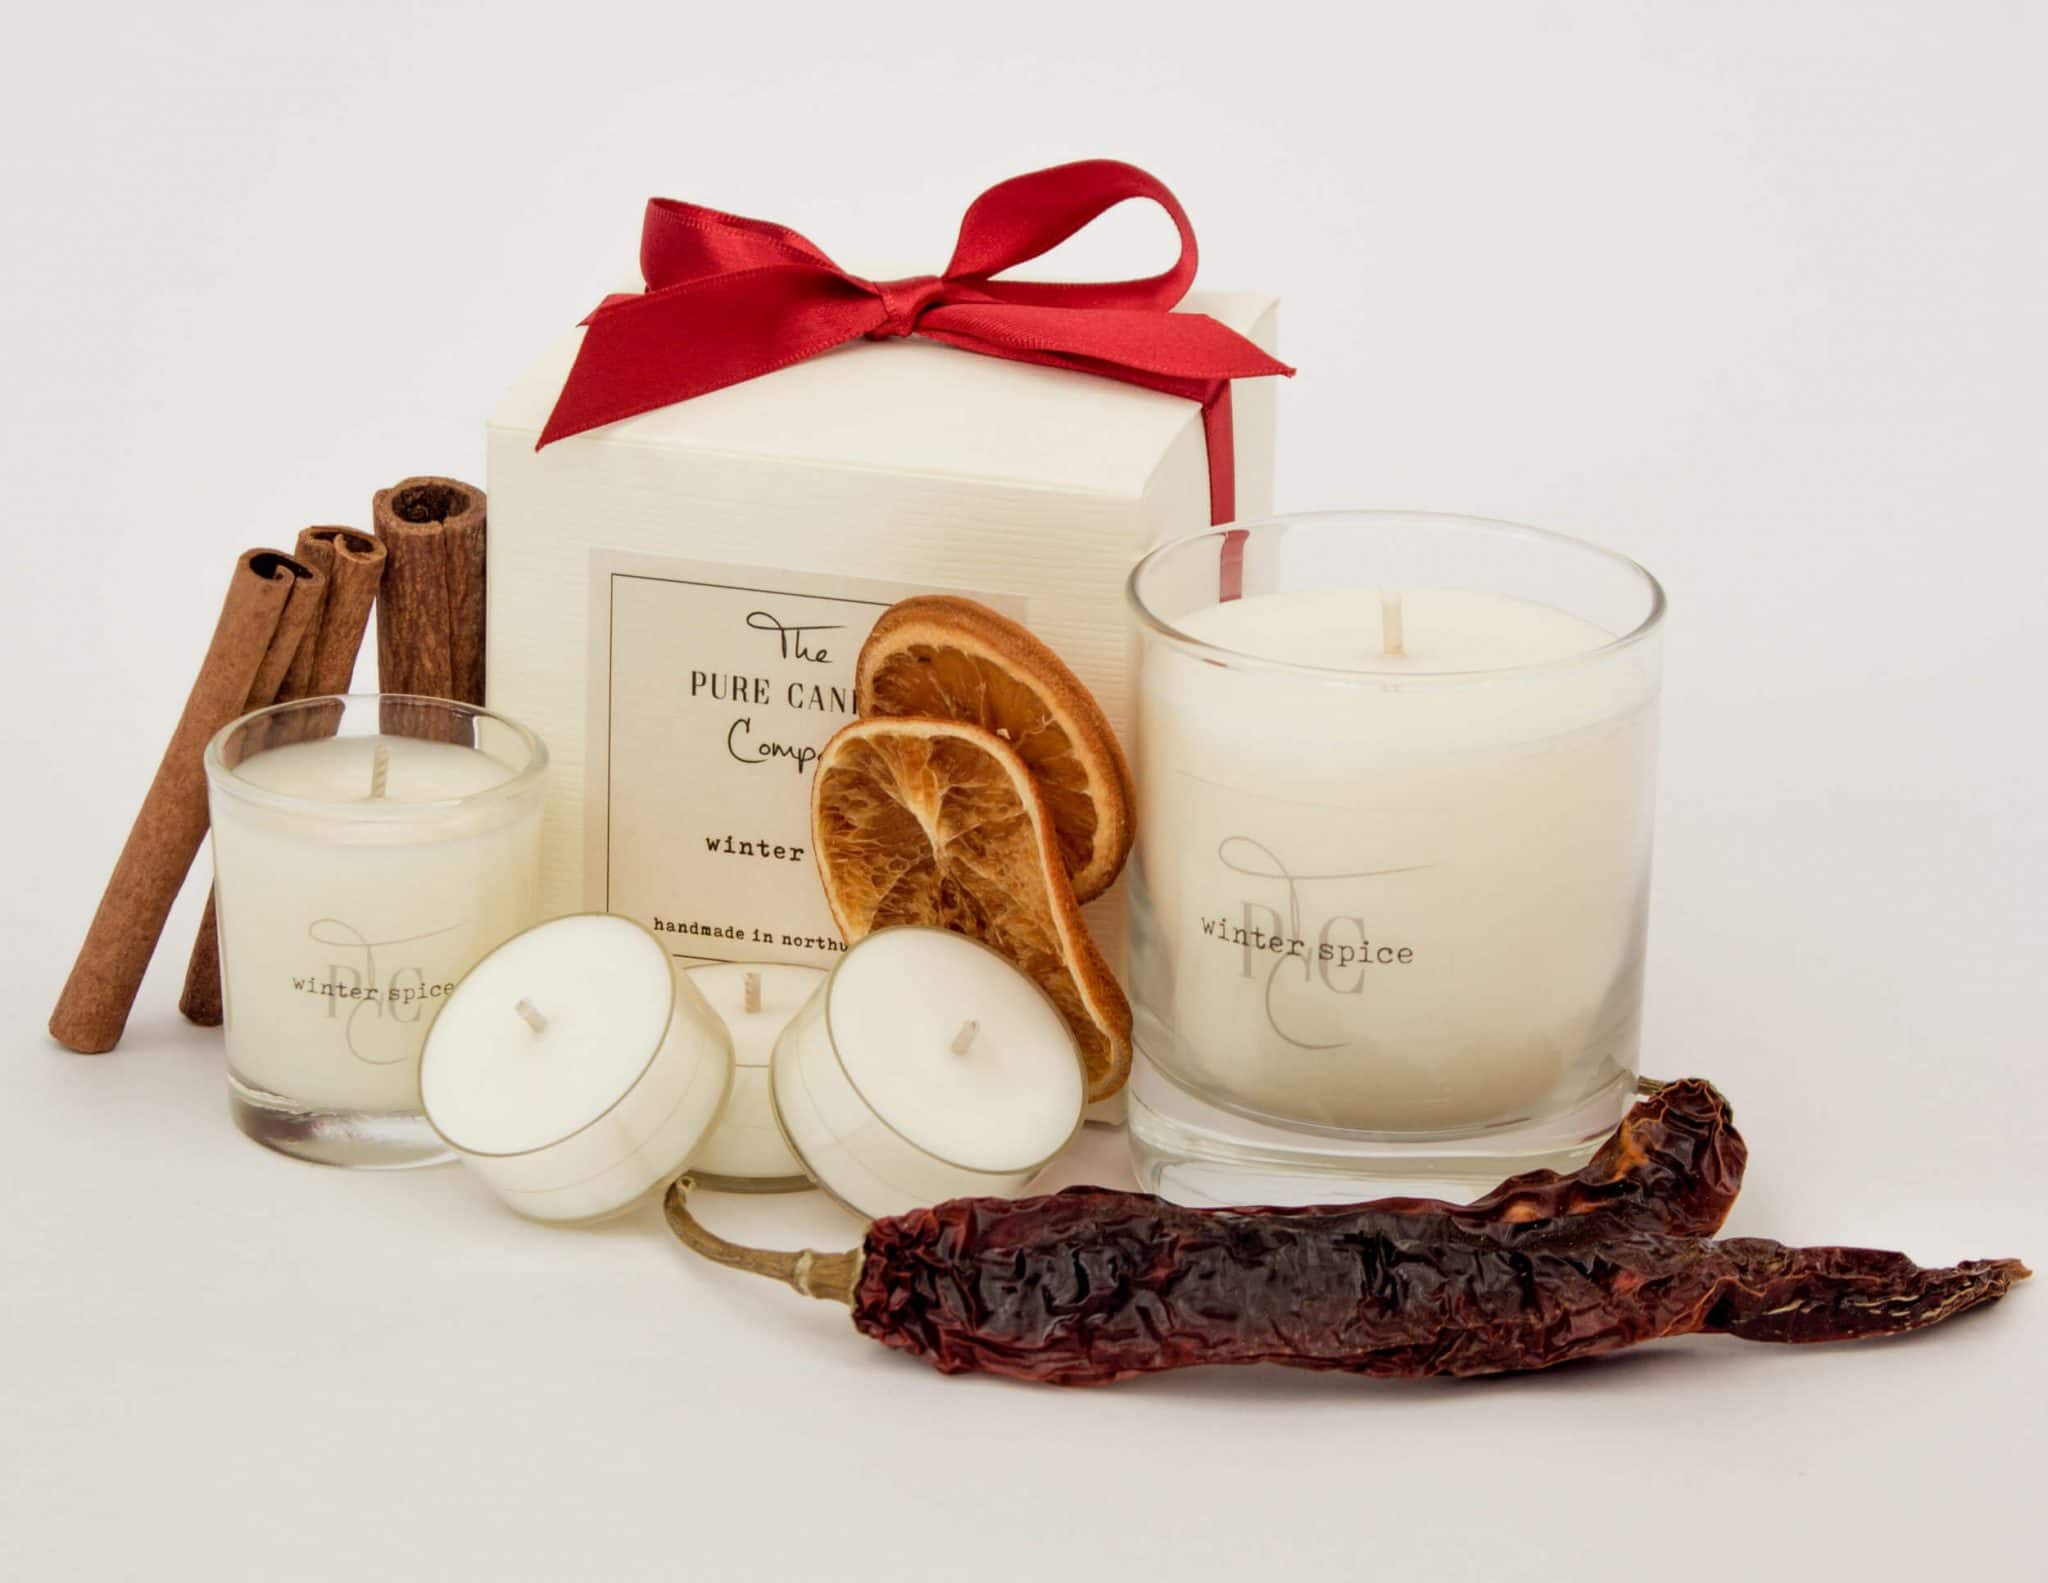 Our signature Christmas candle, with warming clove, spicy cinnamon and sweet orange. An aromatic spicy accord opening with citrus orange and lemon, followed by rich warm cinnamon and clove, with hints of jasmine, resting on a base of woods and musk.